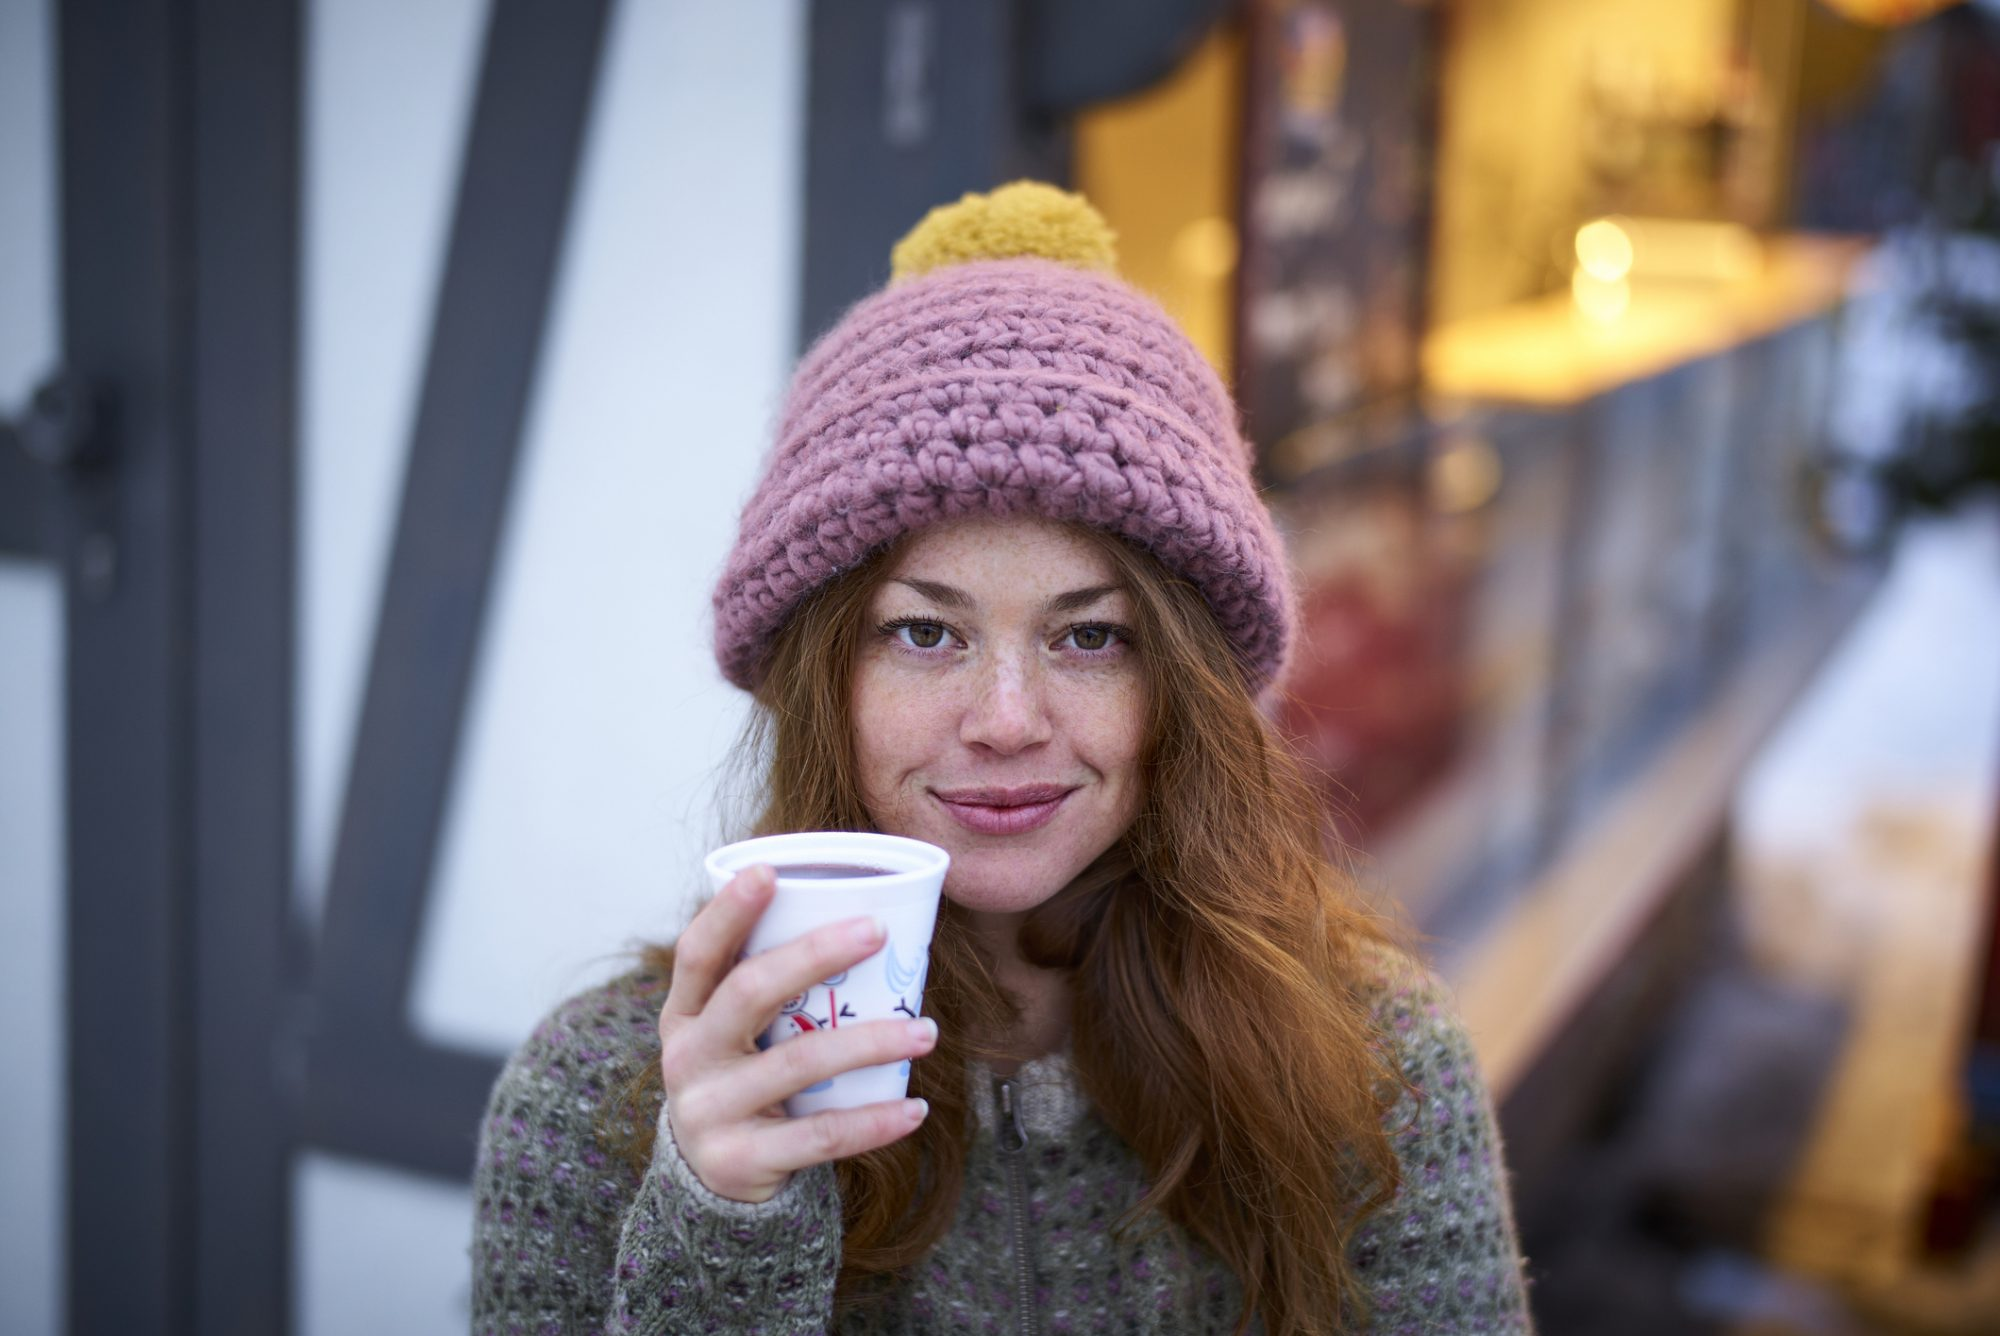 Red hair woman drinking mulled wine